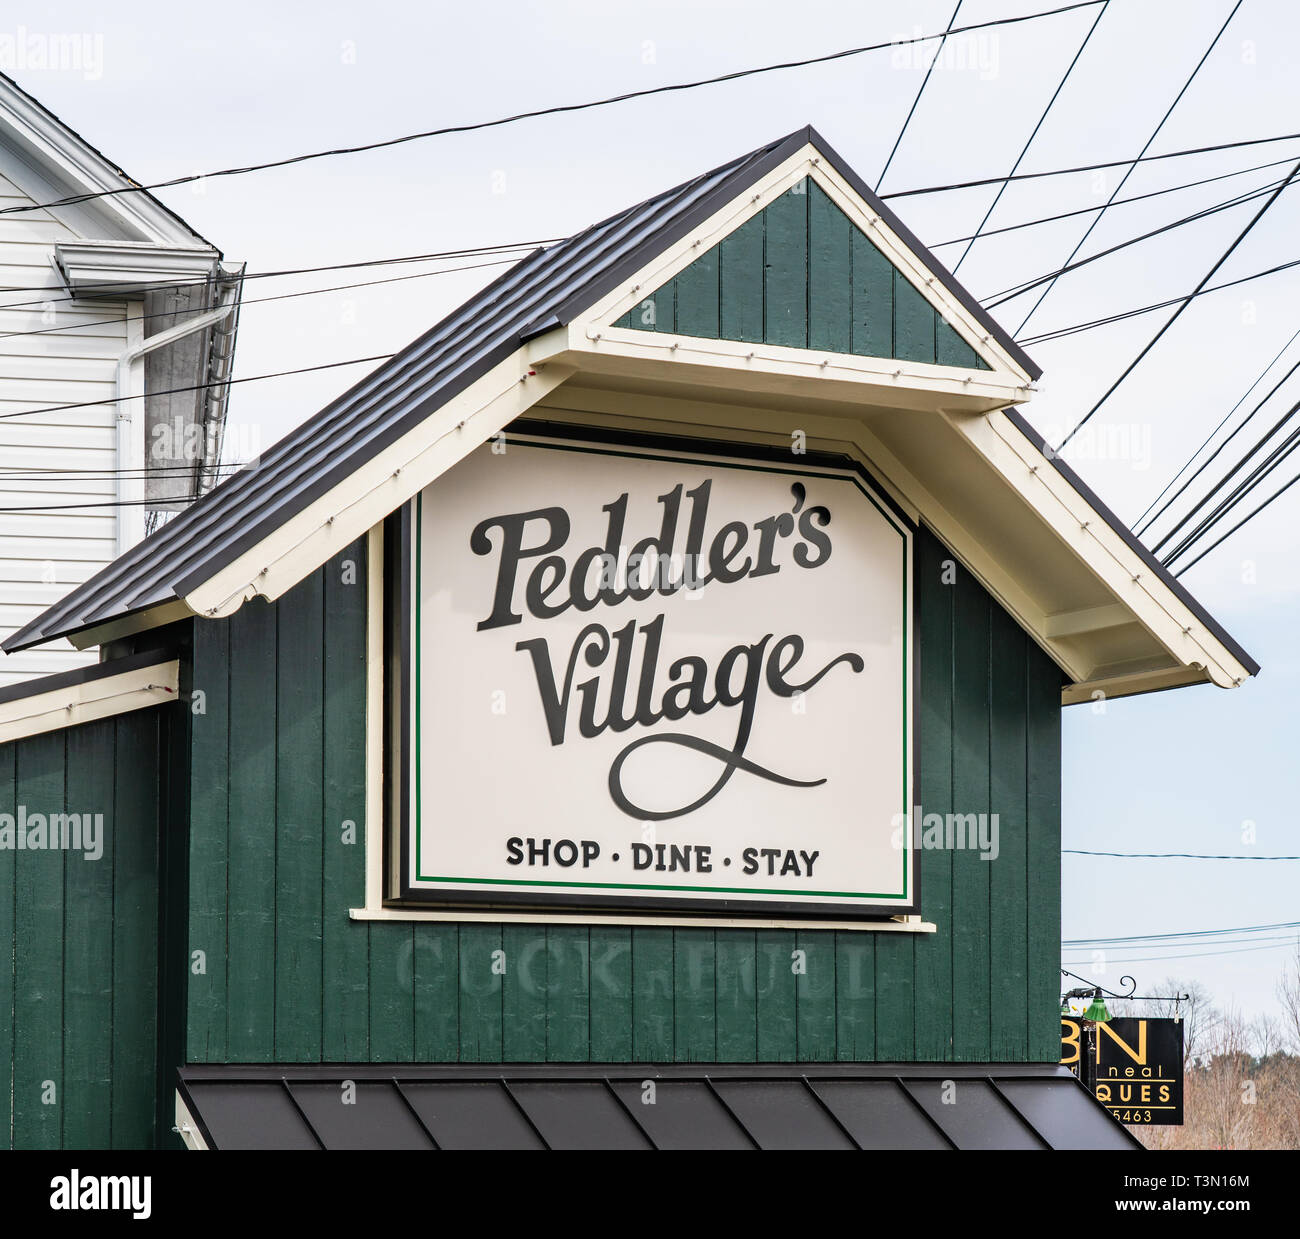 f4f4d78c898 Lahaska, Bucks County, PA - March 30, 2019: Peddler's Village is an  historic village outdoor shopping mall with restaurants and lodging.